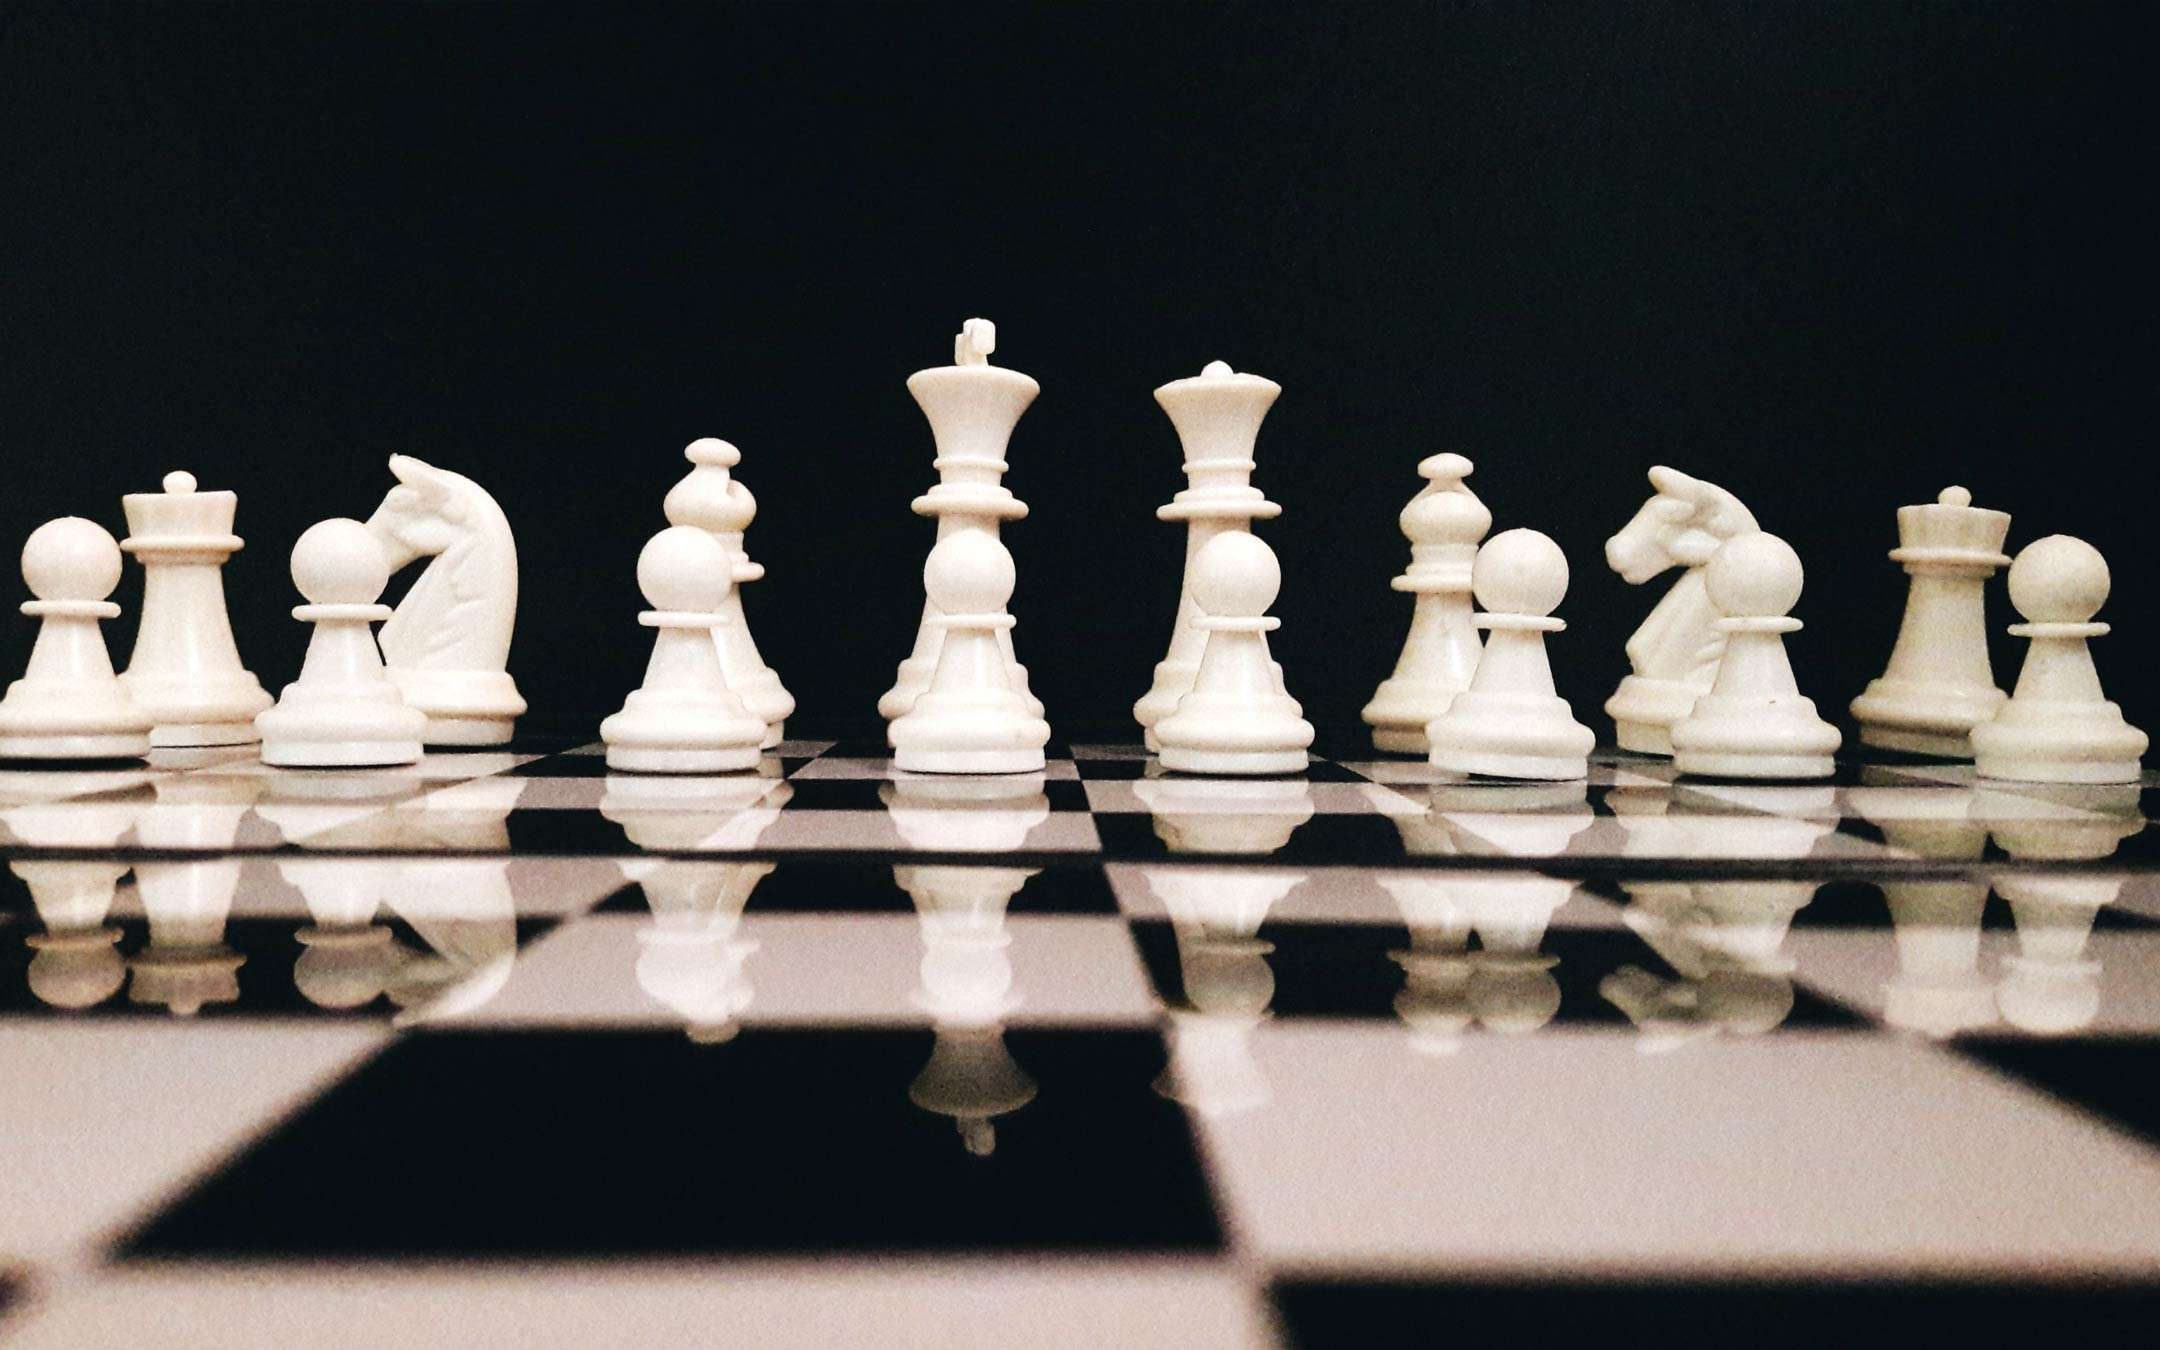 AI plays chess with humans, like humans